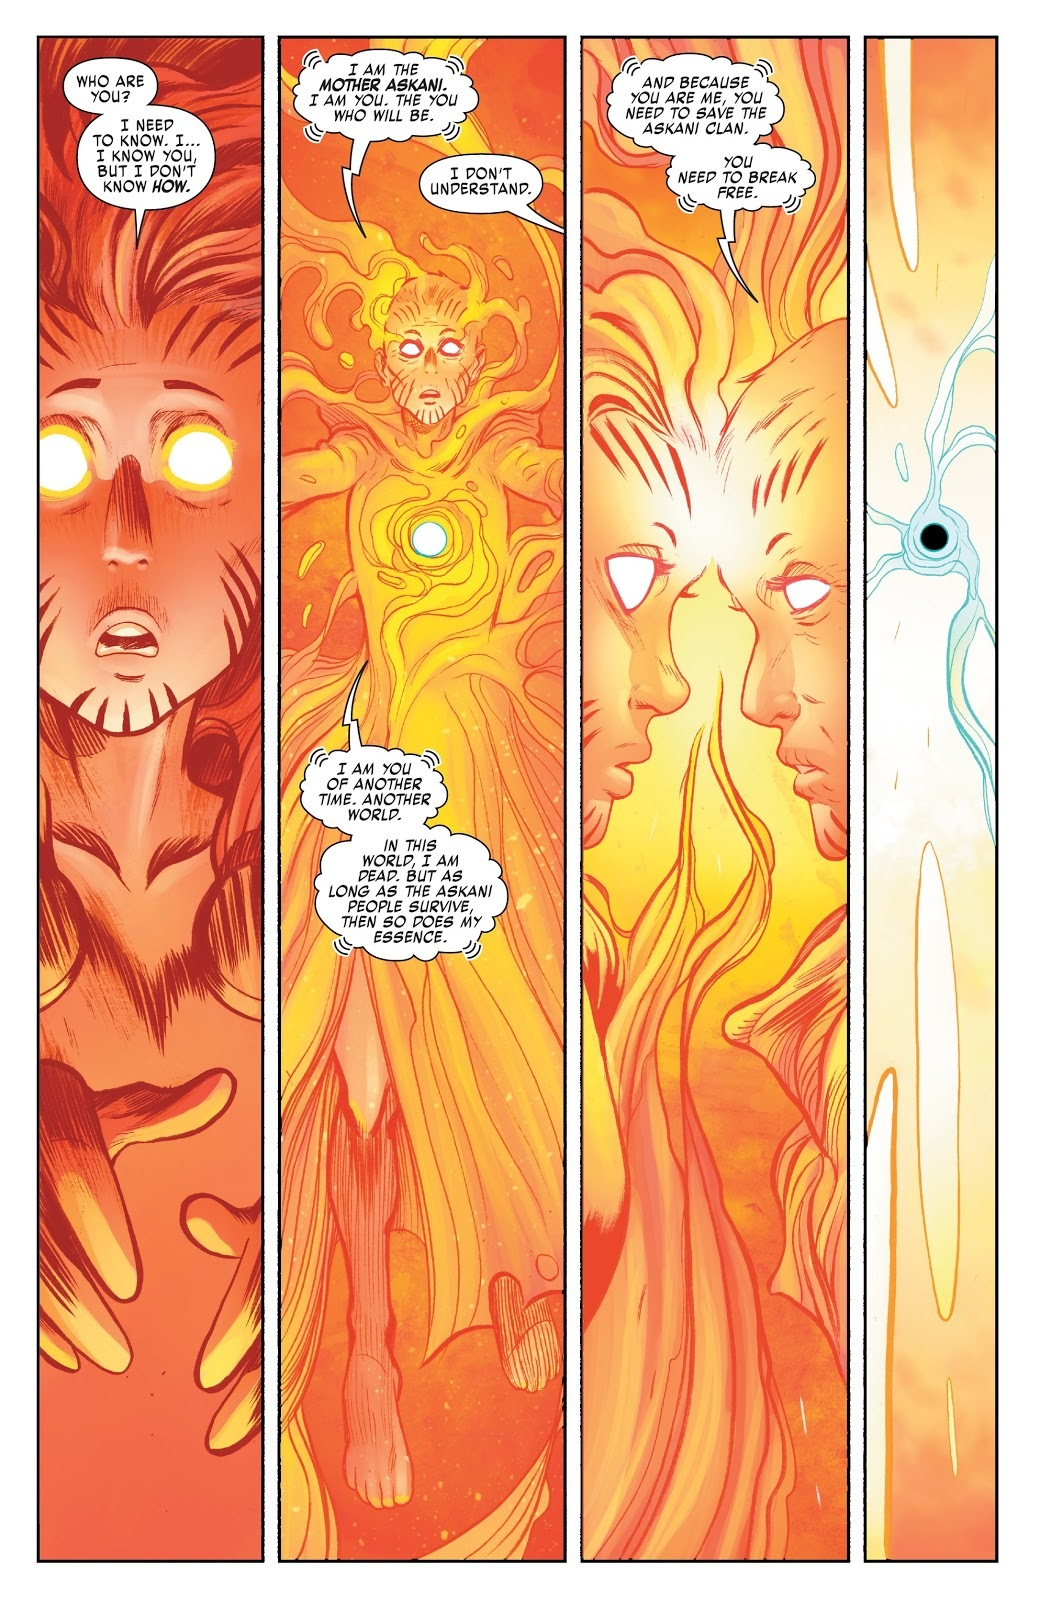 Mother Askani reveals to Rachel Grey that as long as the Askani Clan survives so will she. She also hints that Rachel will still one day become her, despite changes in the timeline that should've prevented it.